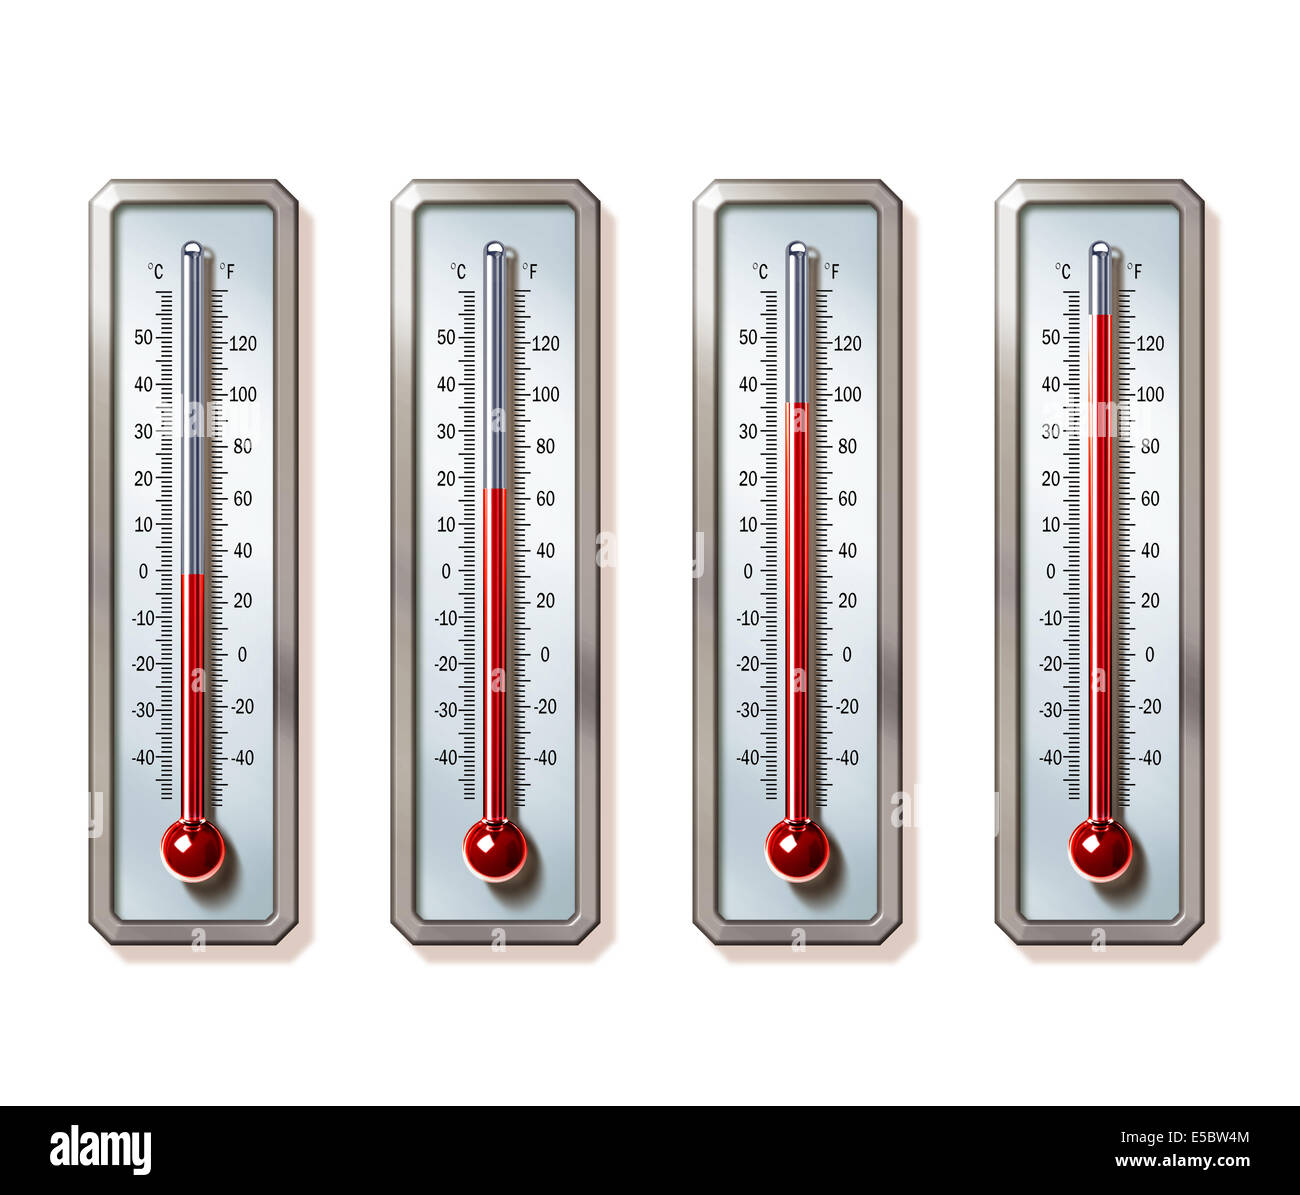 Illustrative image of thermometers showing rising temperatures over white background representing global warming - Stock Image